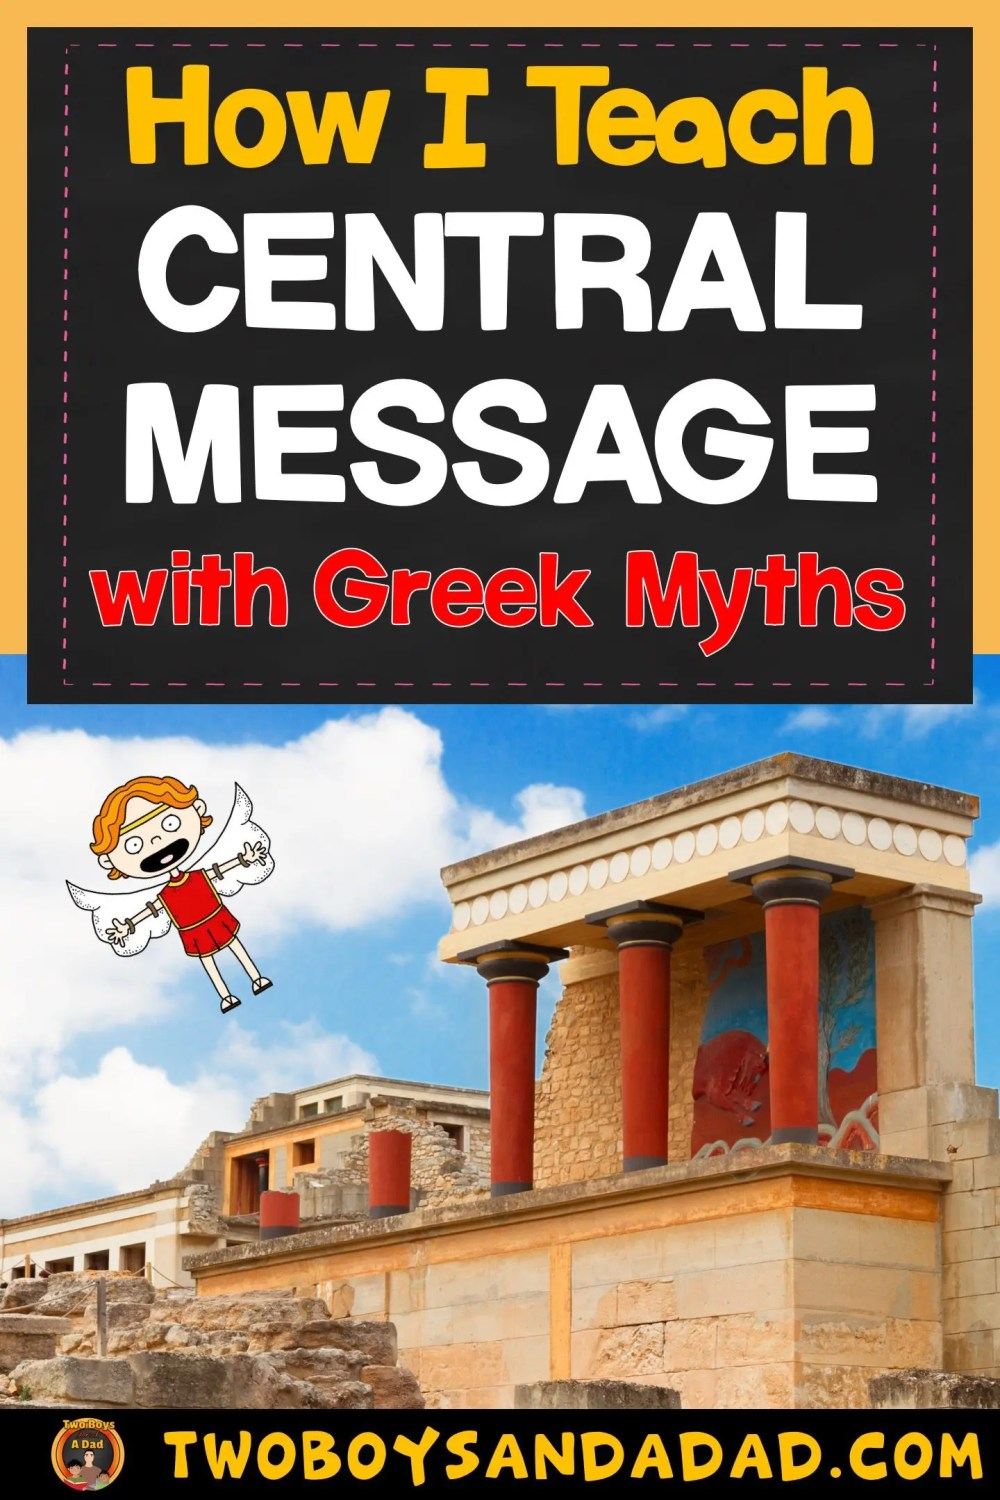 medium resolution of Teaching the Central Message with Awesome Greek Myths - Two Boys and a Dad